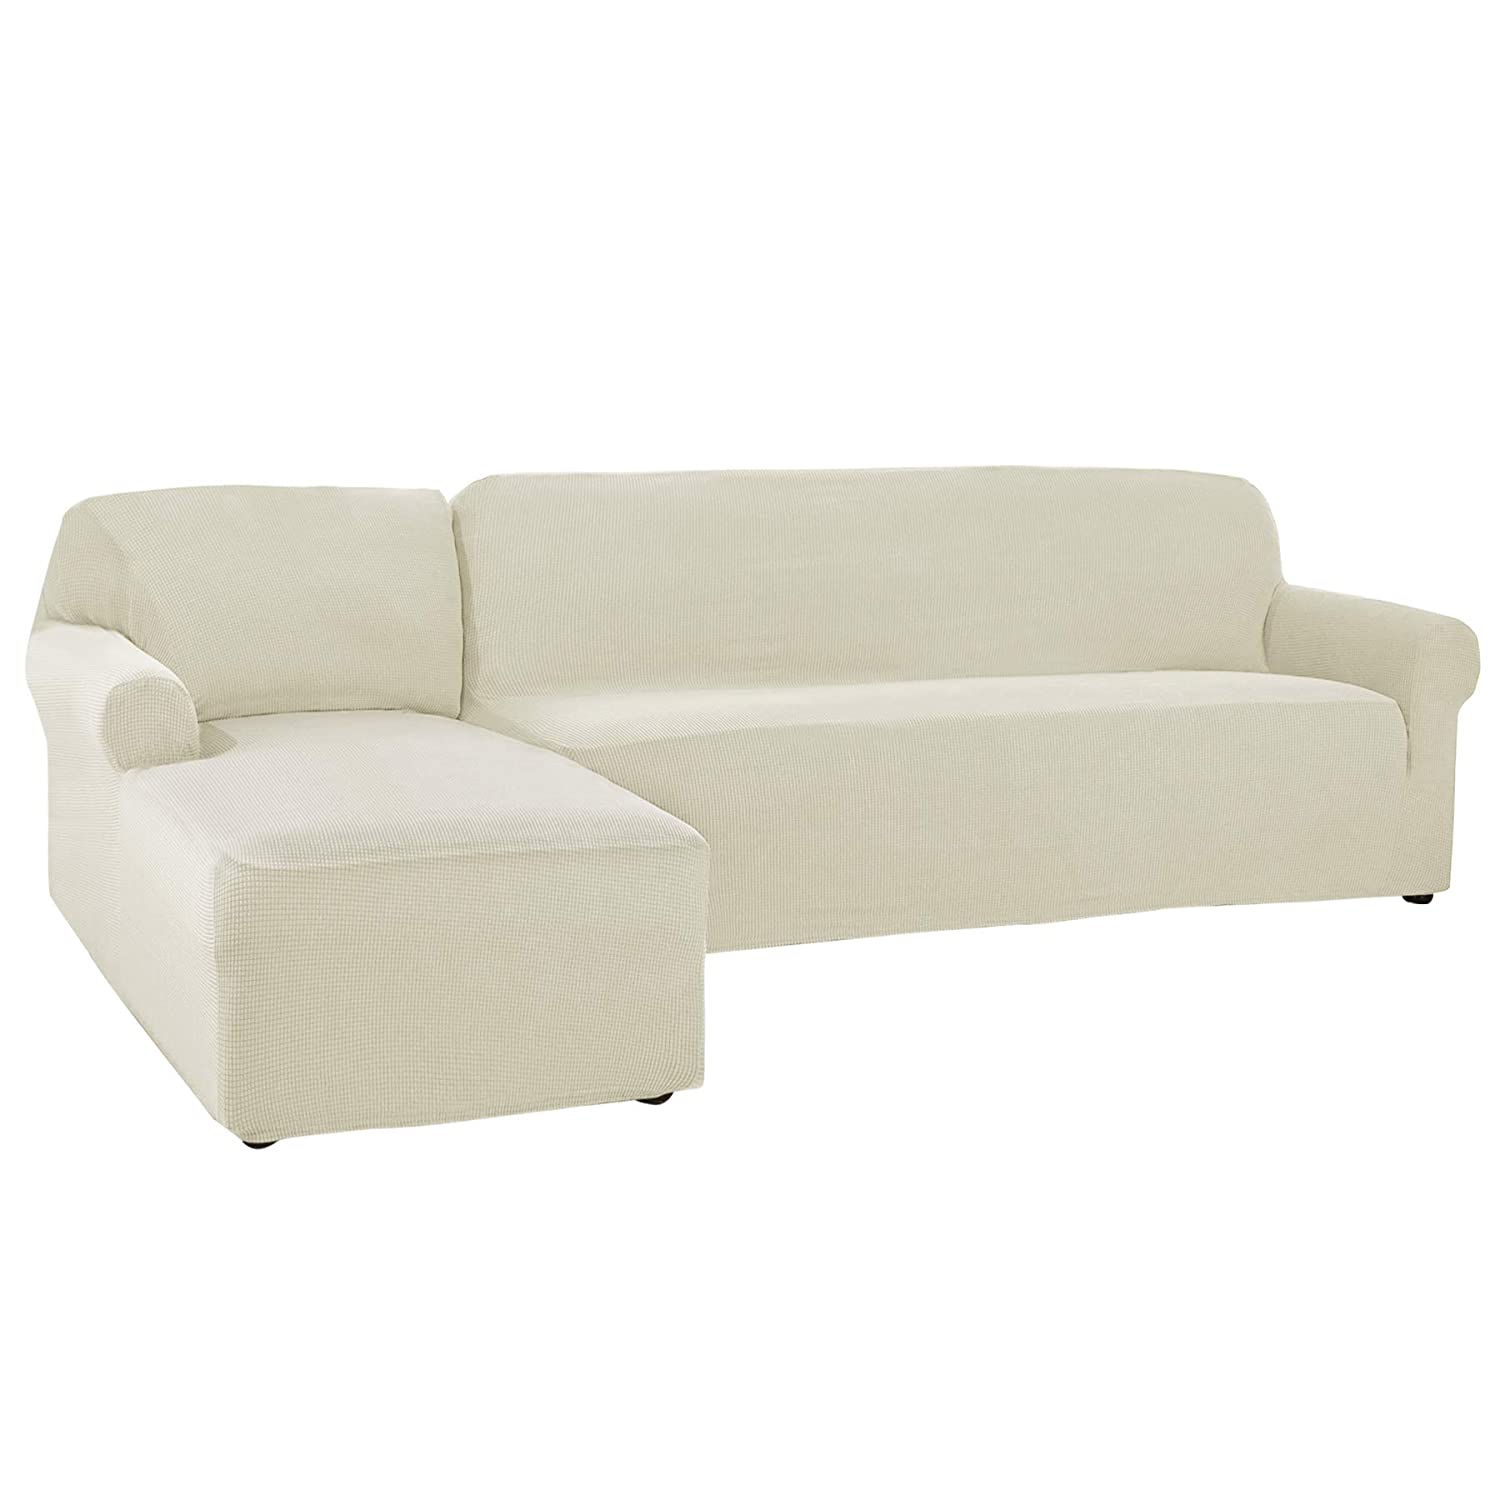 CHUN YI 2 Pieces L-Shaped Jacquard Polyester Stretch Fabric Sectional Sofa  Slipcovers (Left Chaise(2 Seats), Ivory White)